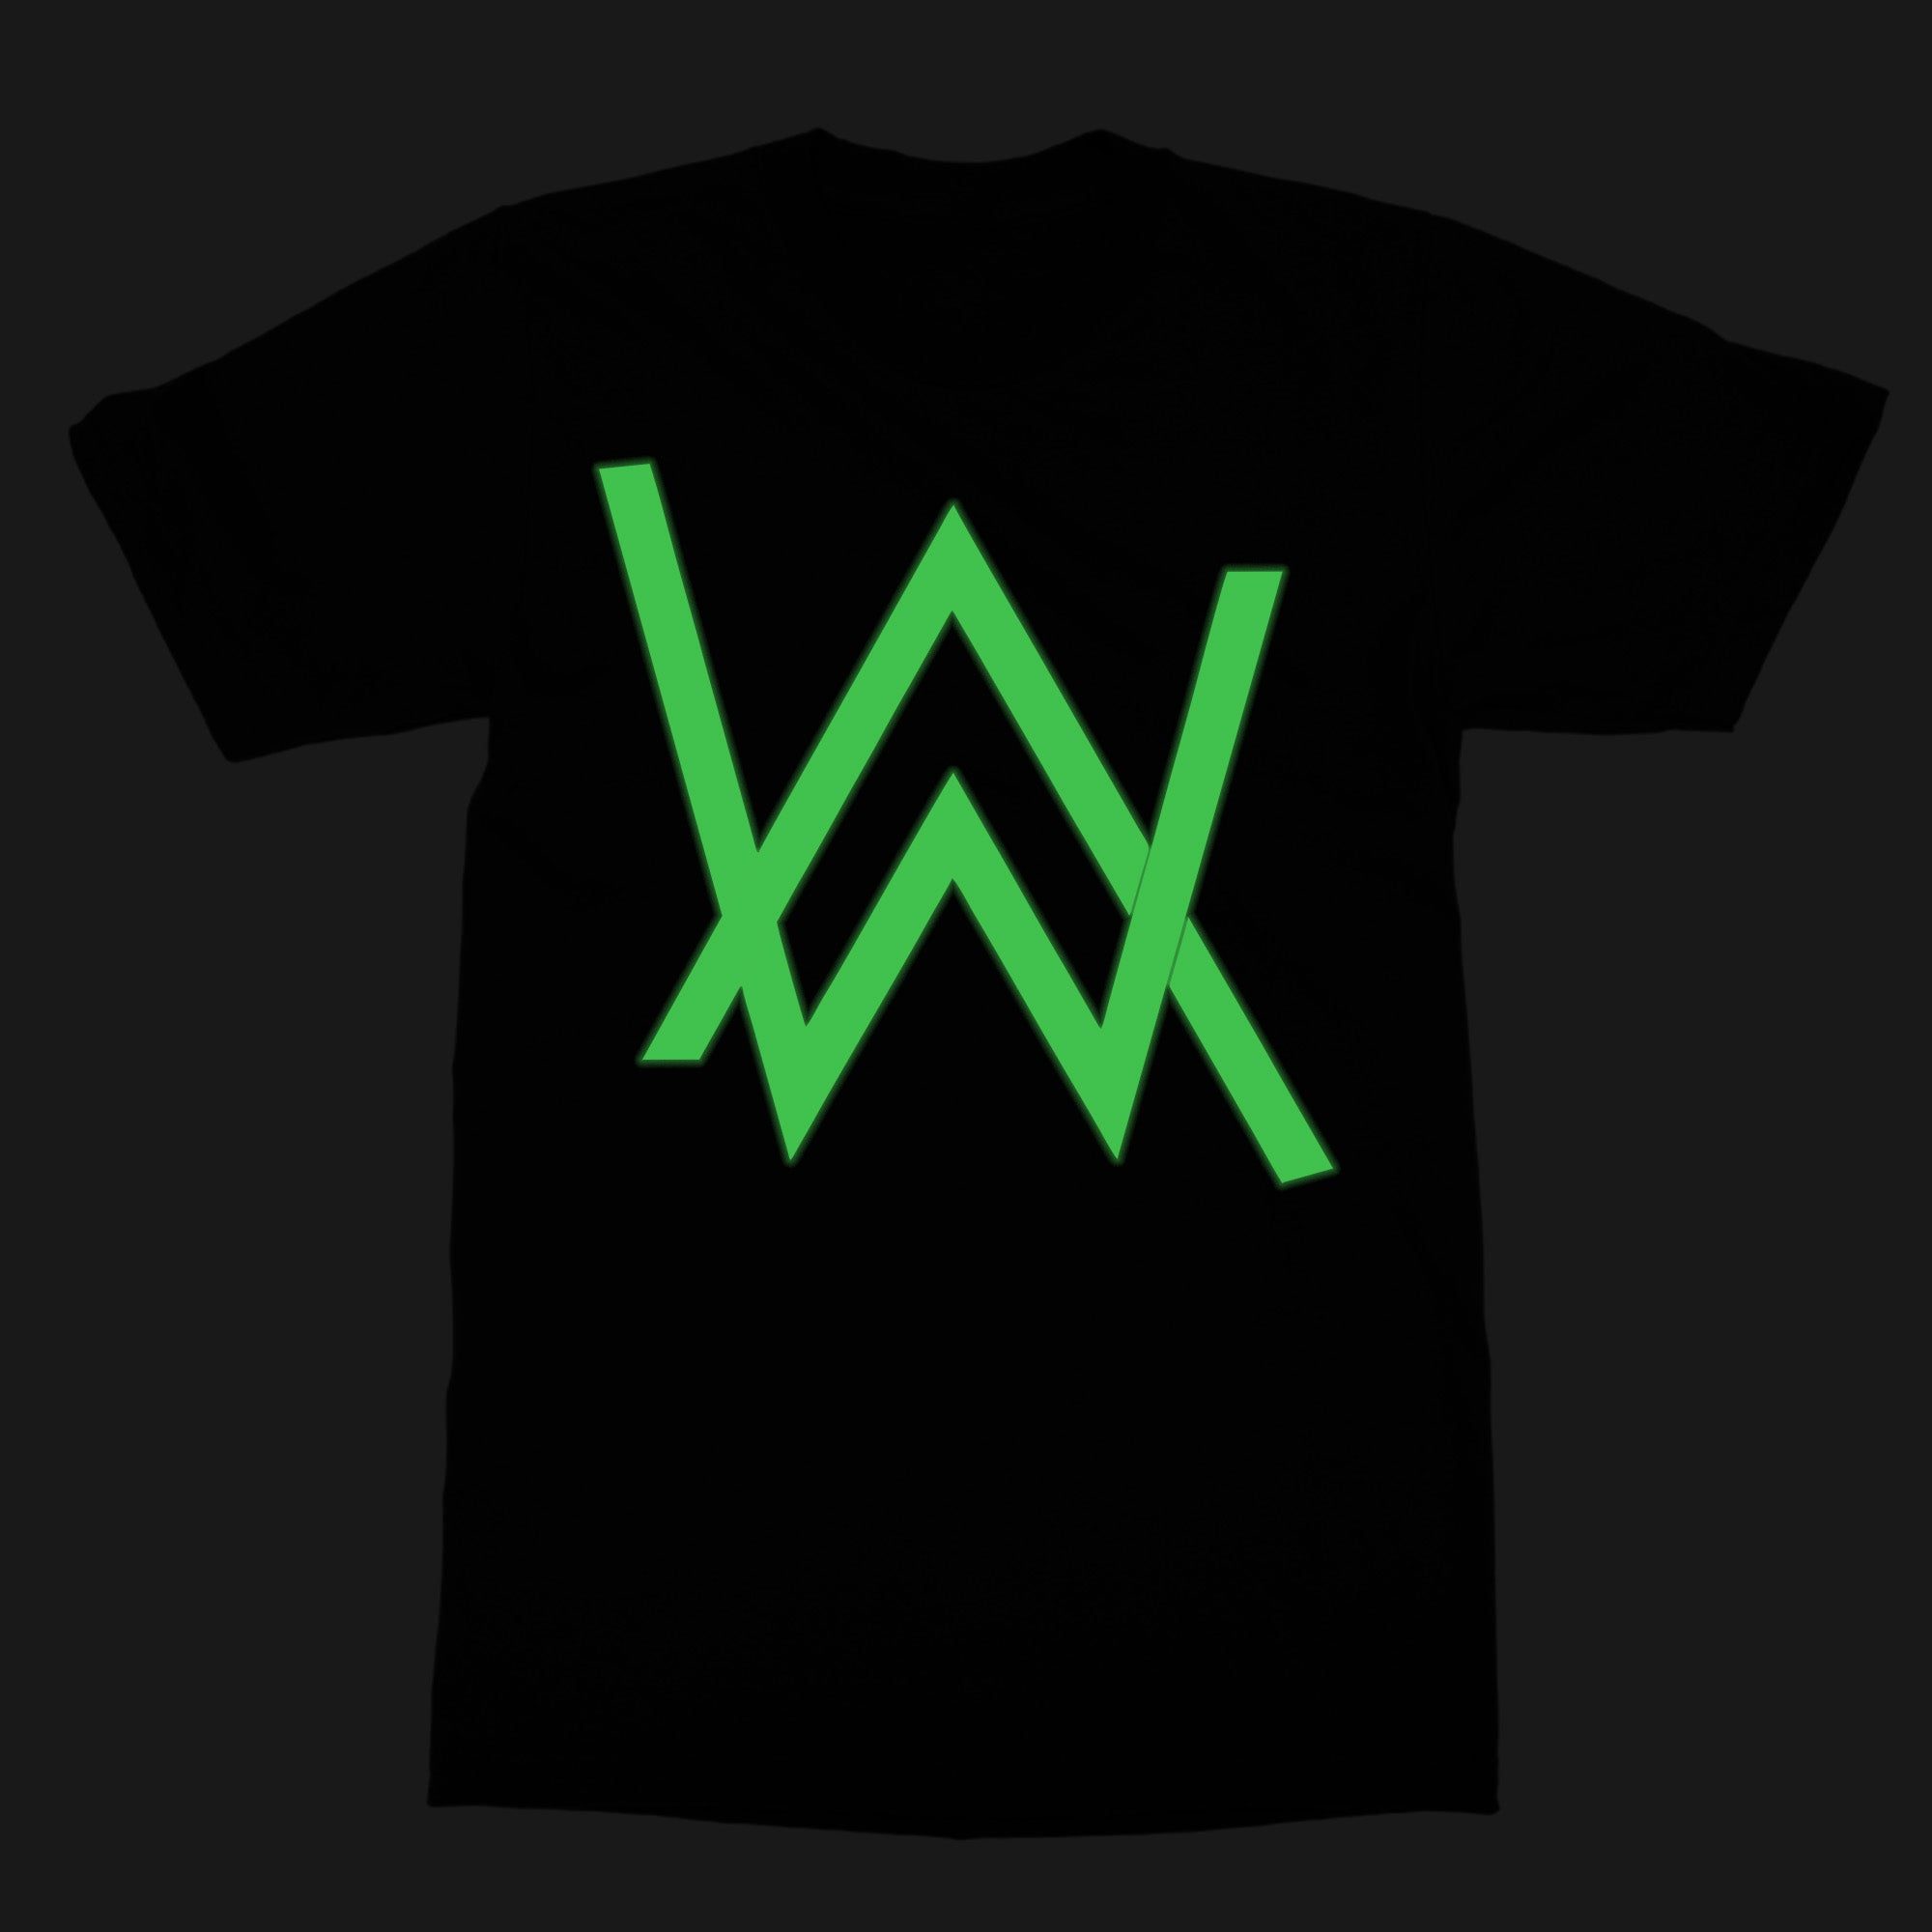 Alan Walker Glow In The Dark Tshirt In India By Sillypunter Silly